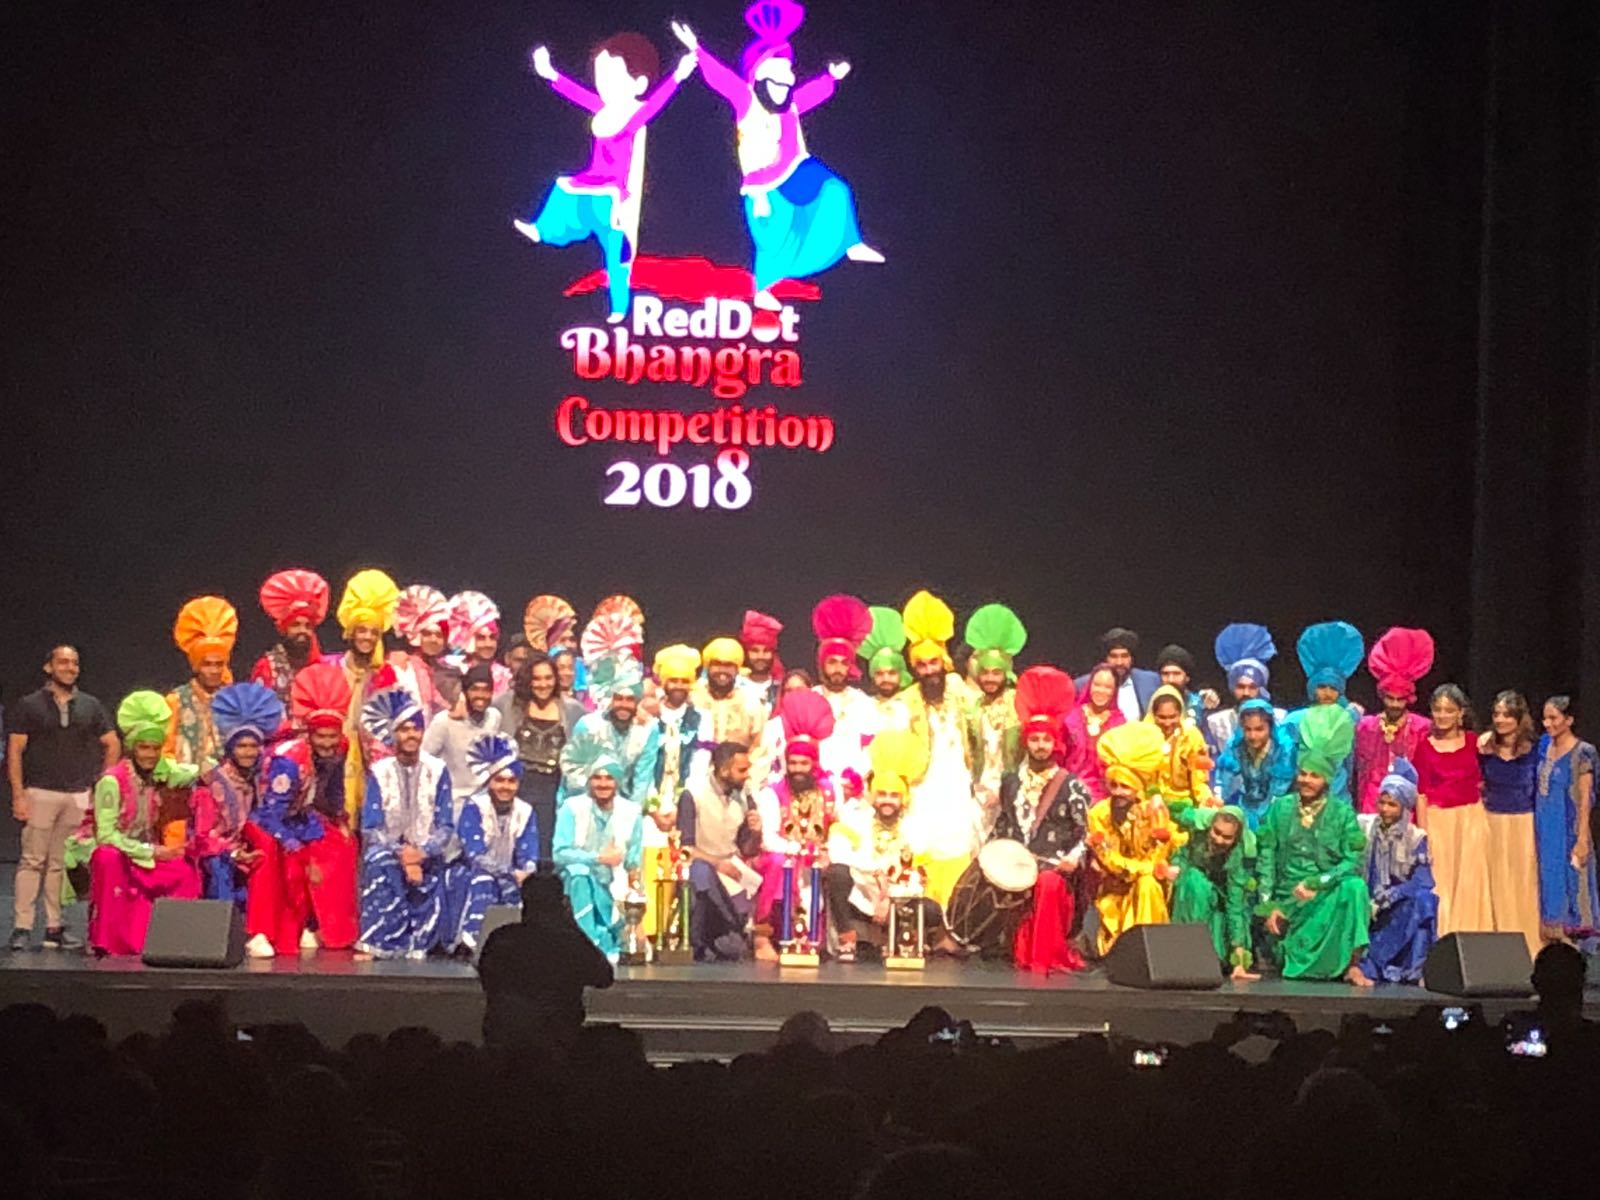 A glimpse of all the stars of the night at the RedDot Bhangra Competition! Photo courtesy: Facebook/@reddot